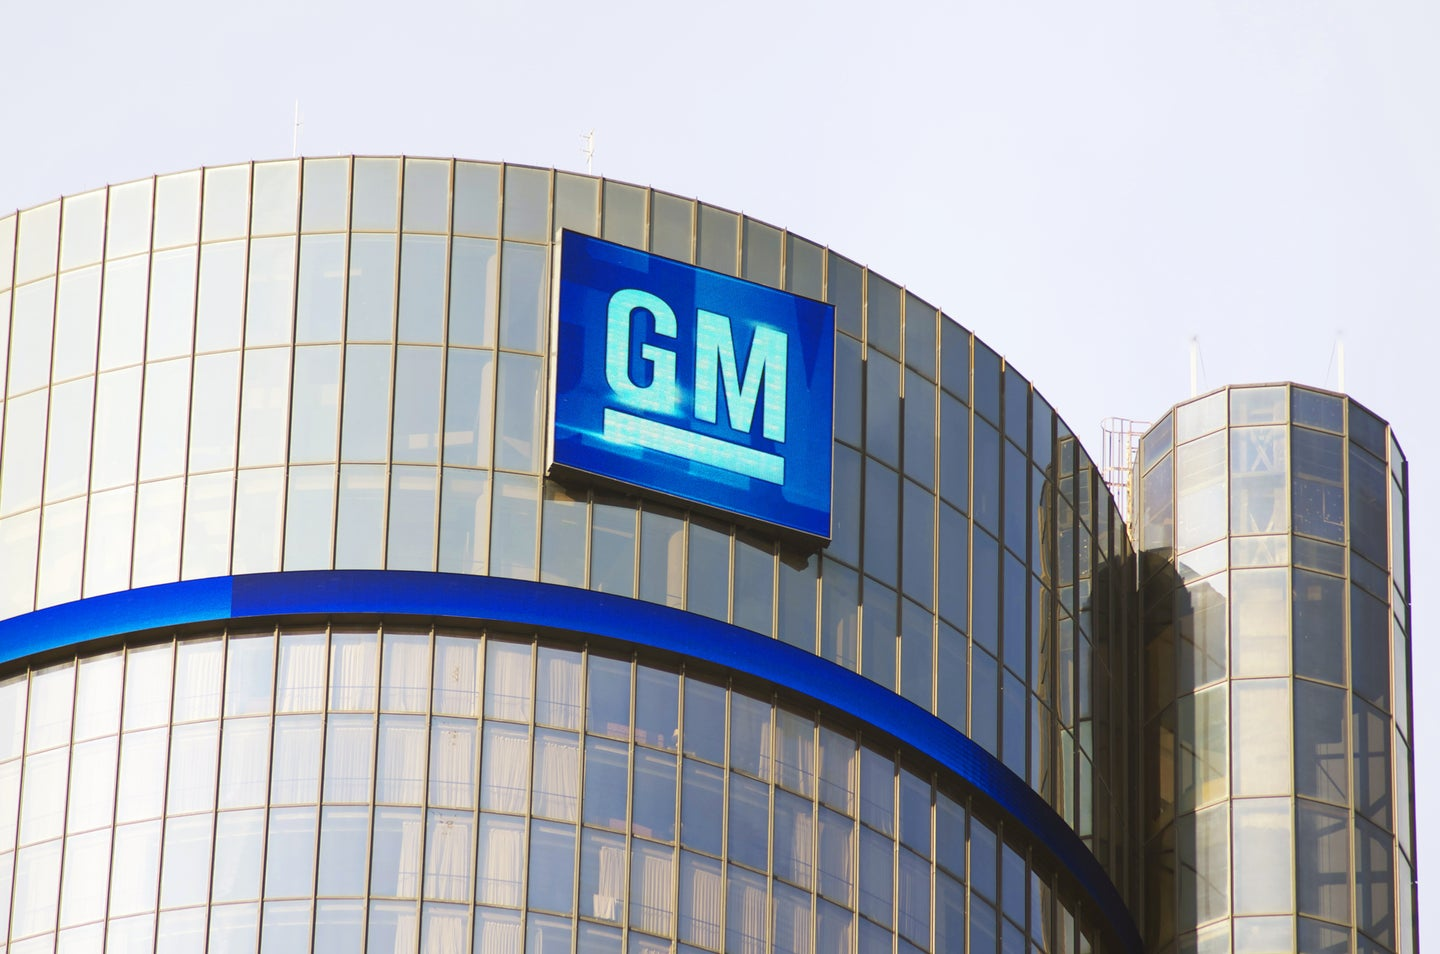 GM logo on the side of a building